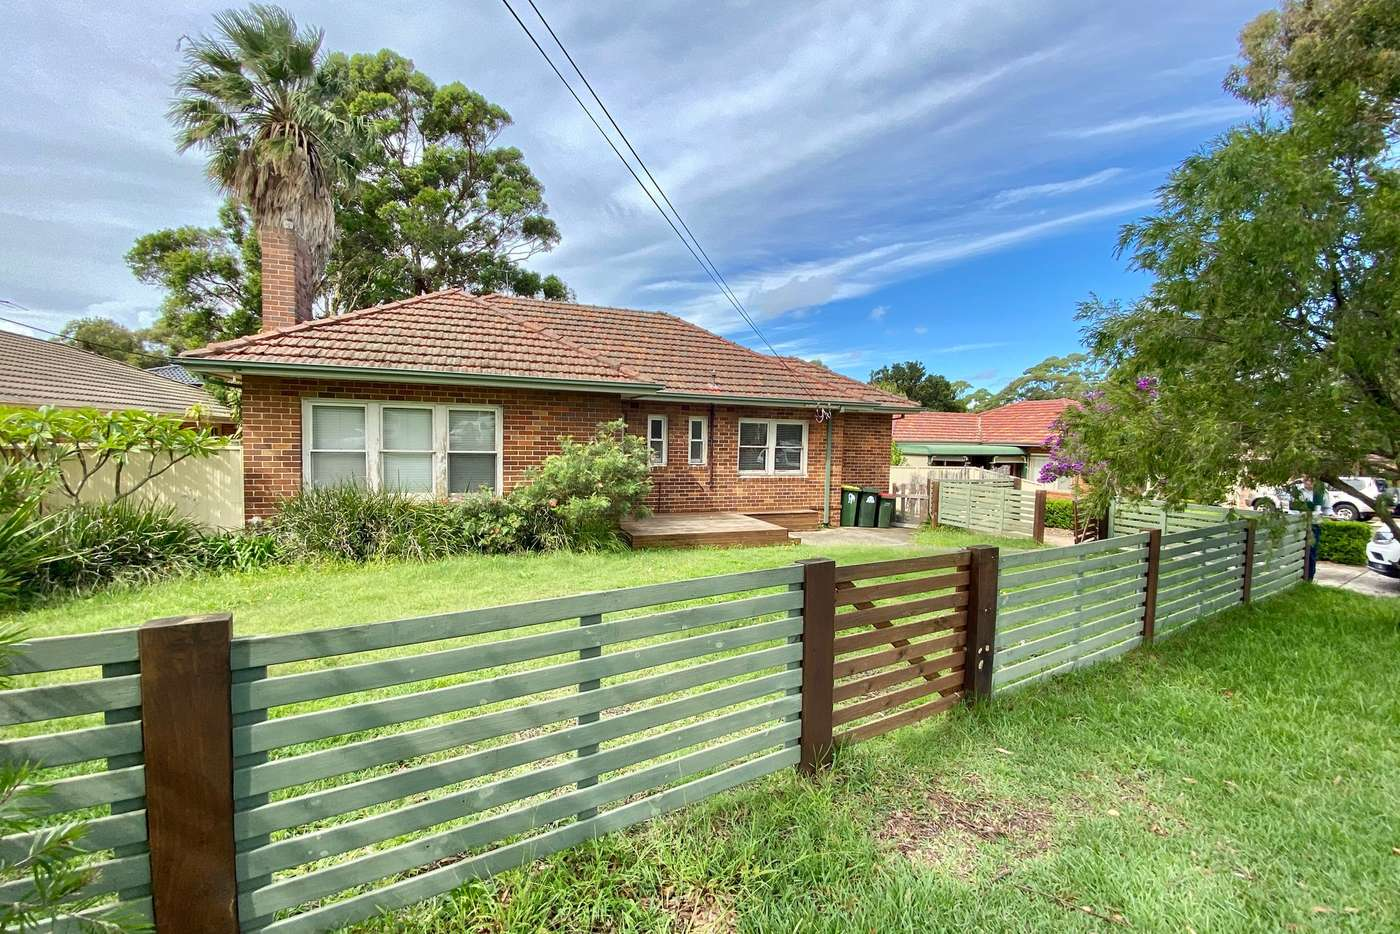 Main view of Homely house listing, 14 Hinkler Avenue, Caringbah NSW 2229